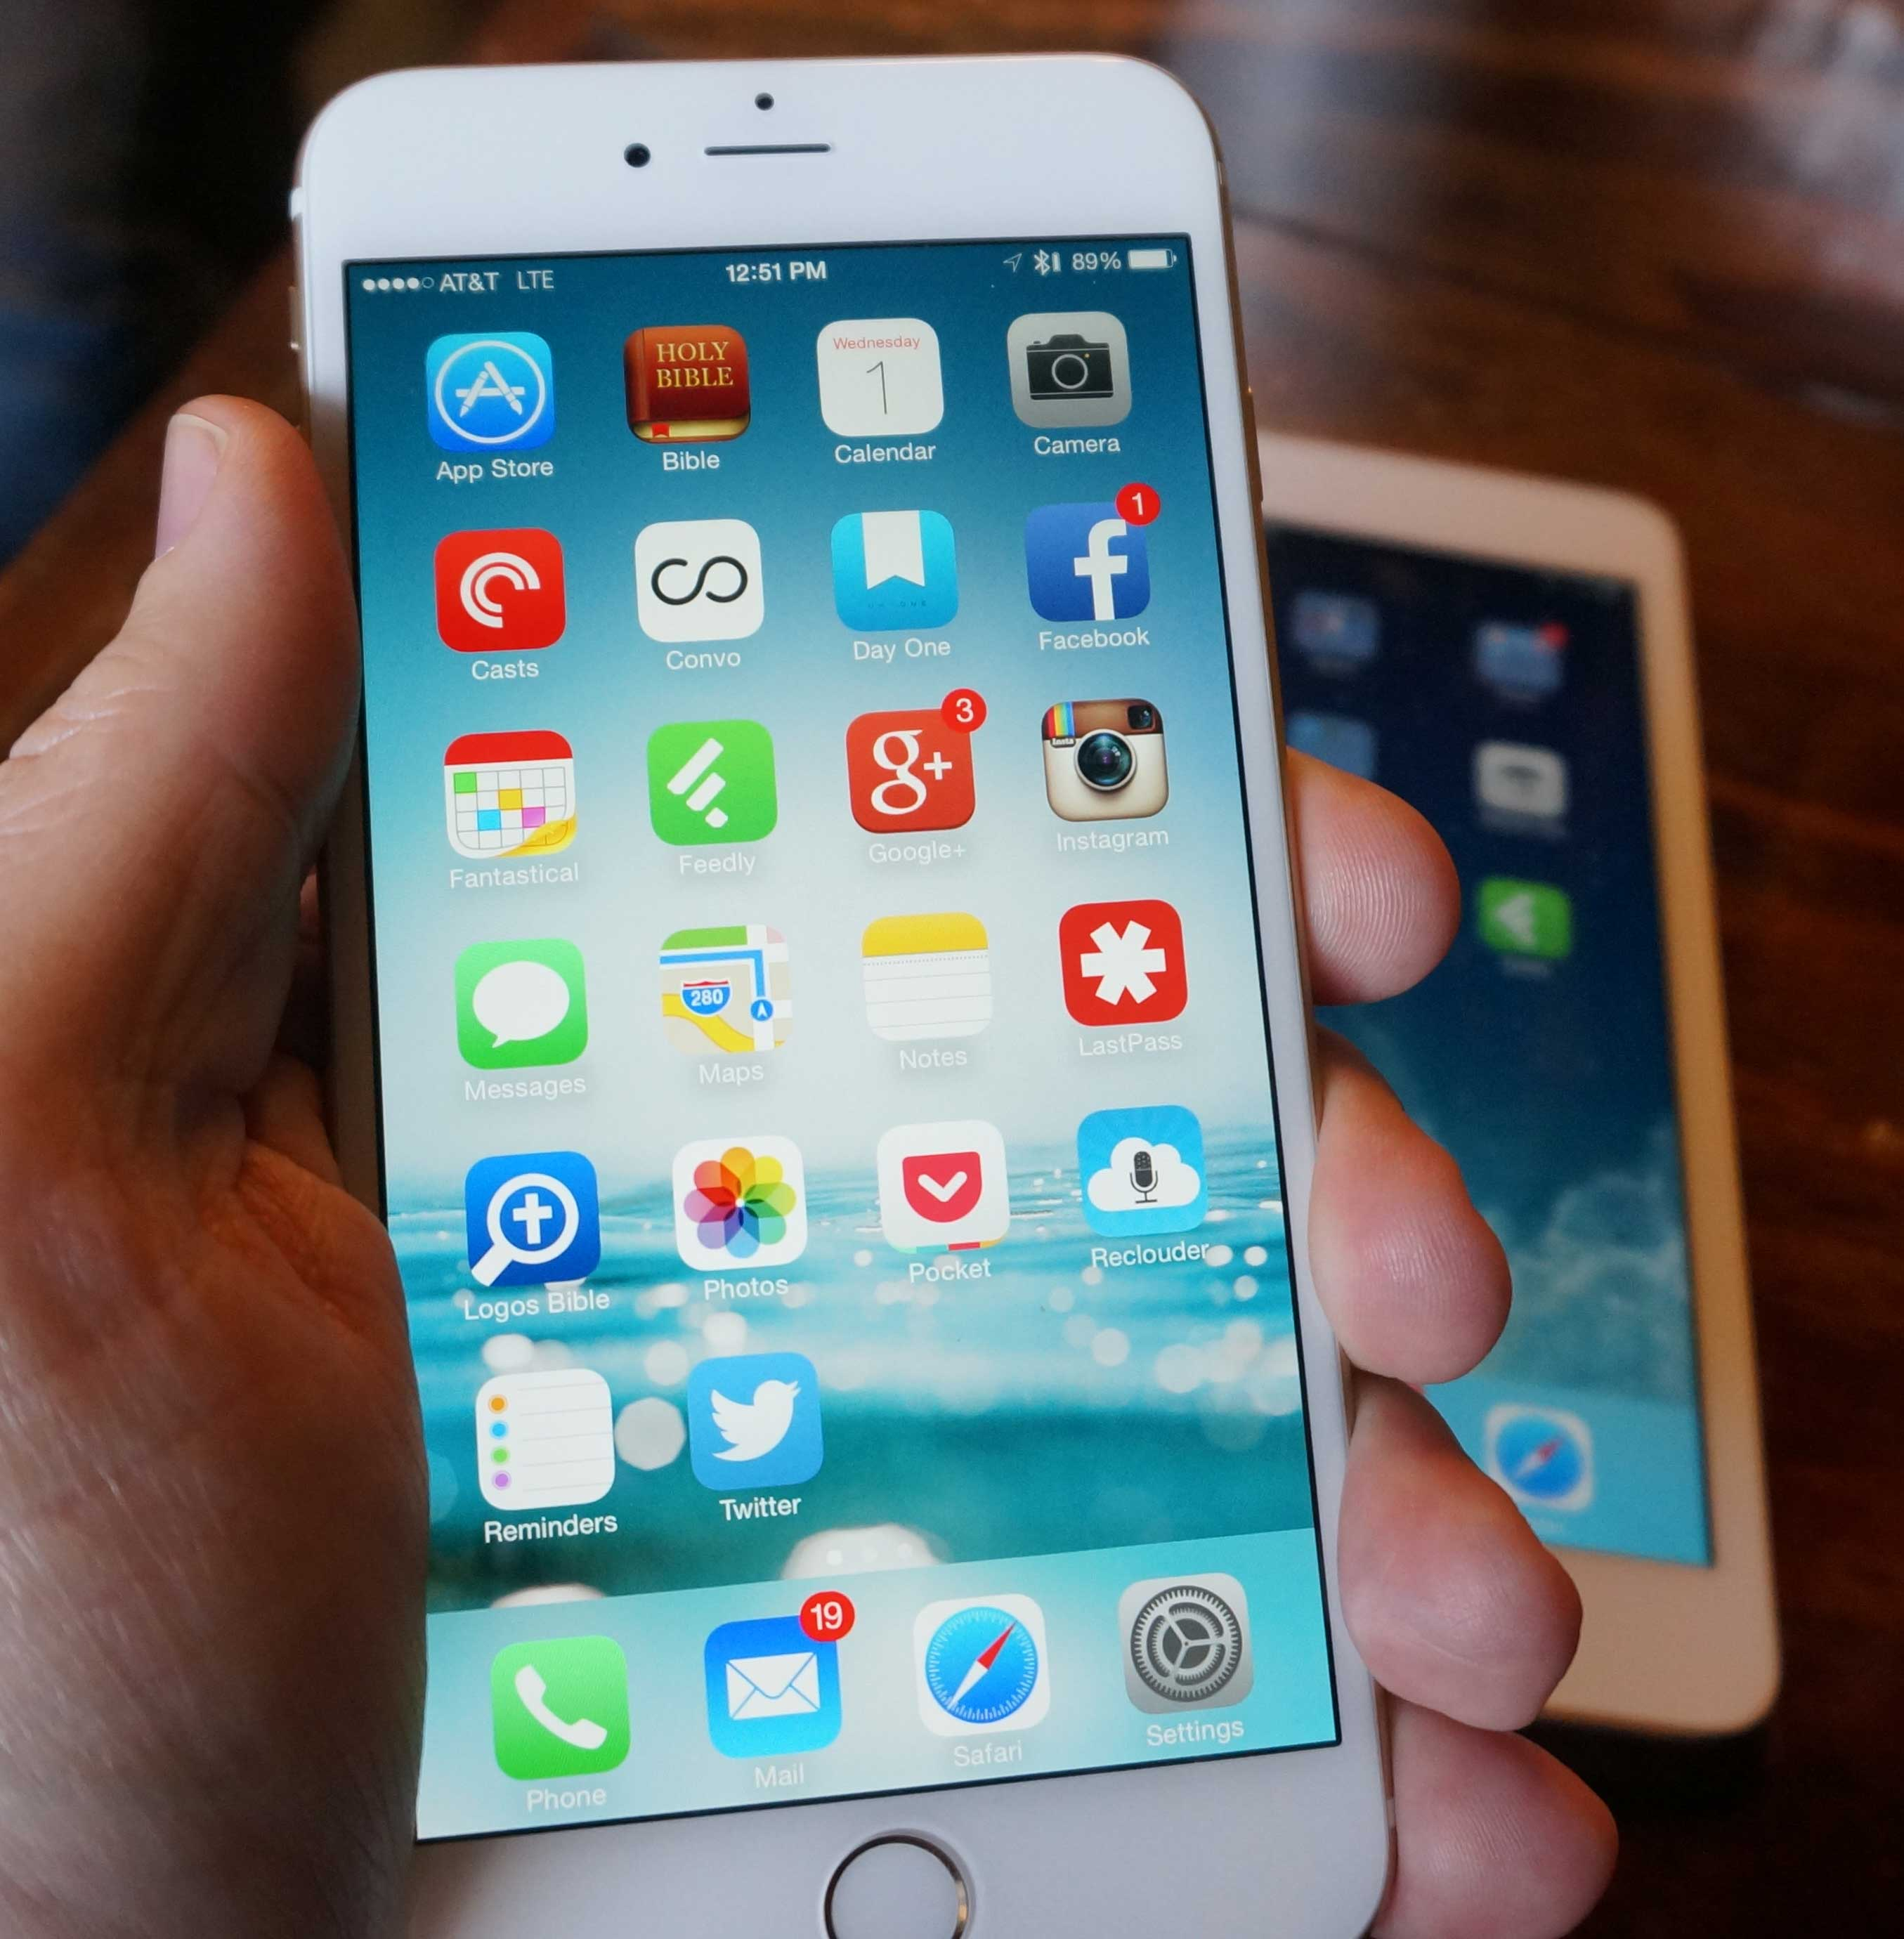 Apple's iOS 8.1 Update Out of the Bin - Here's what to Expect - Image 1